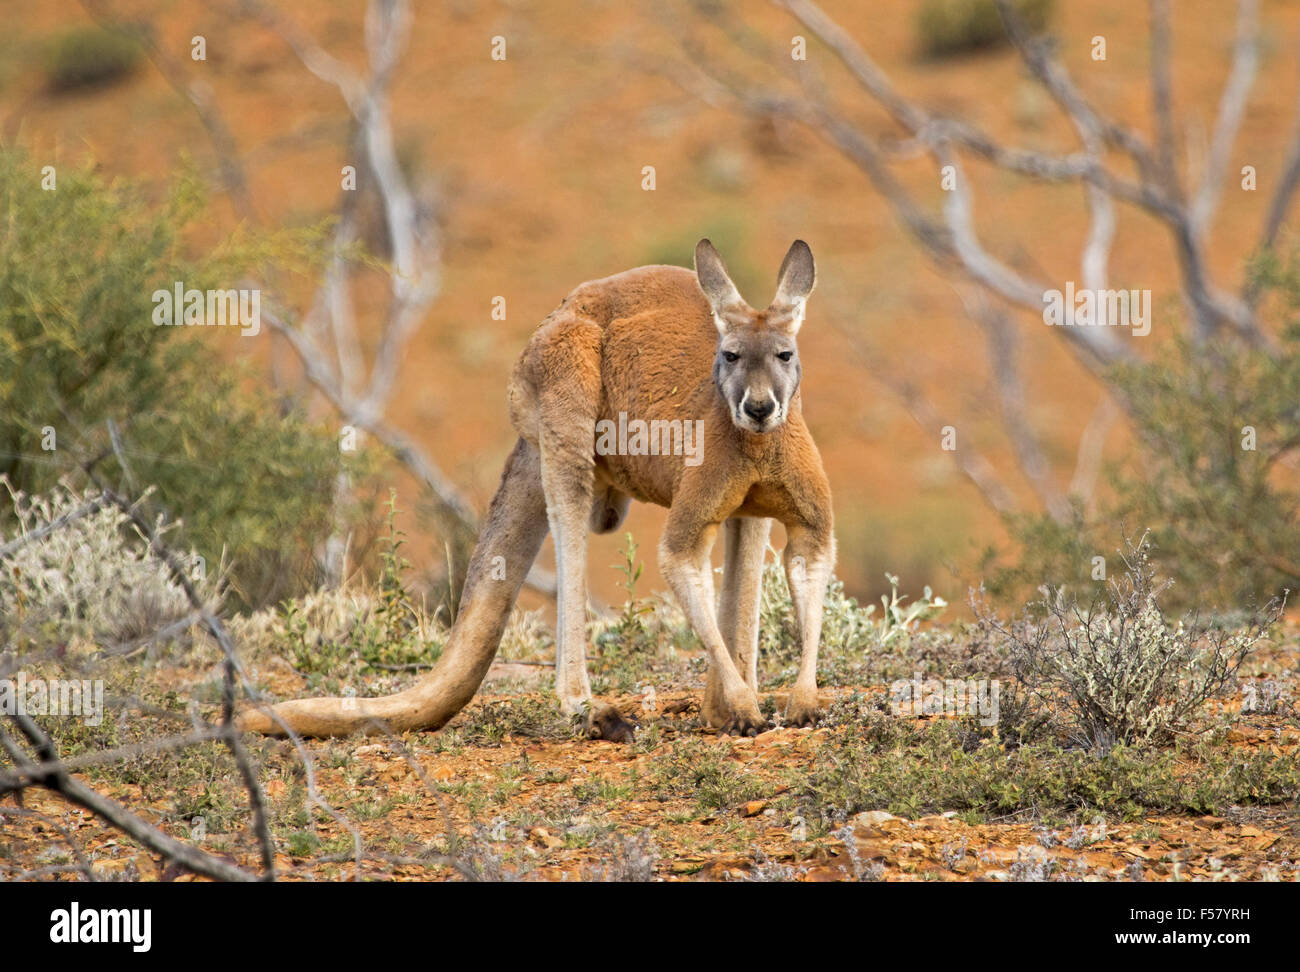 the red kangaroo macropus rufus The red kangaroo (macropus rufus) is the largest marsupial in the world it is  native to australia, particularly in the dry grasslands that cover the continent.